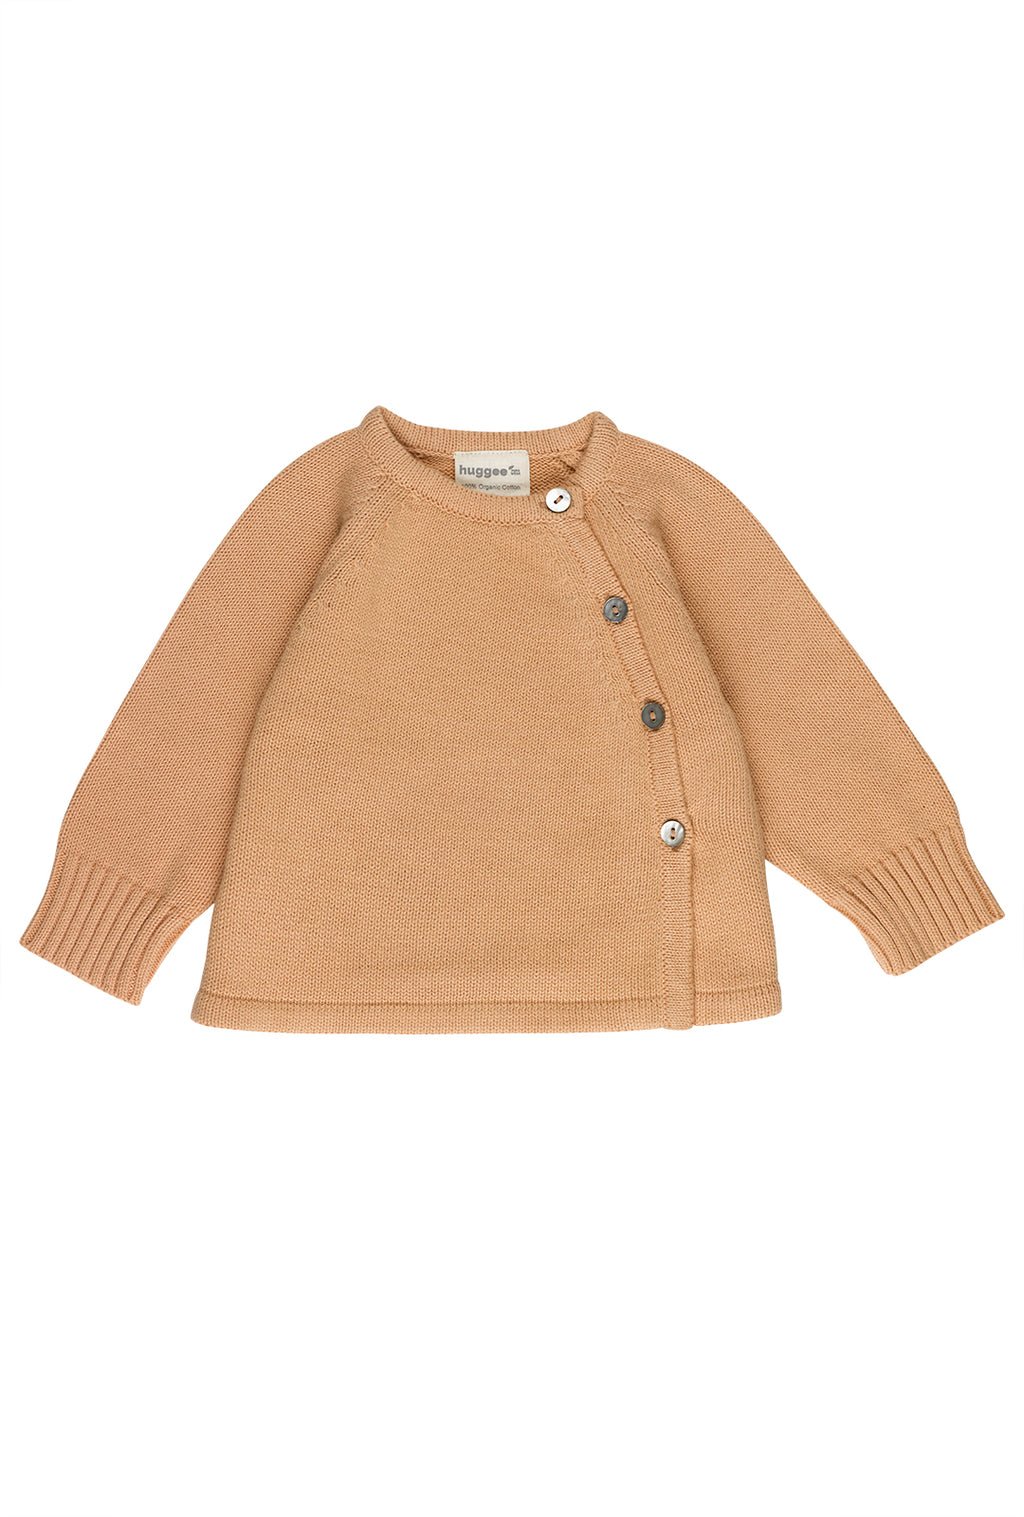 Peach Nougat Knitted Cardigan